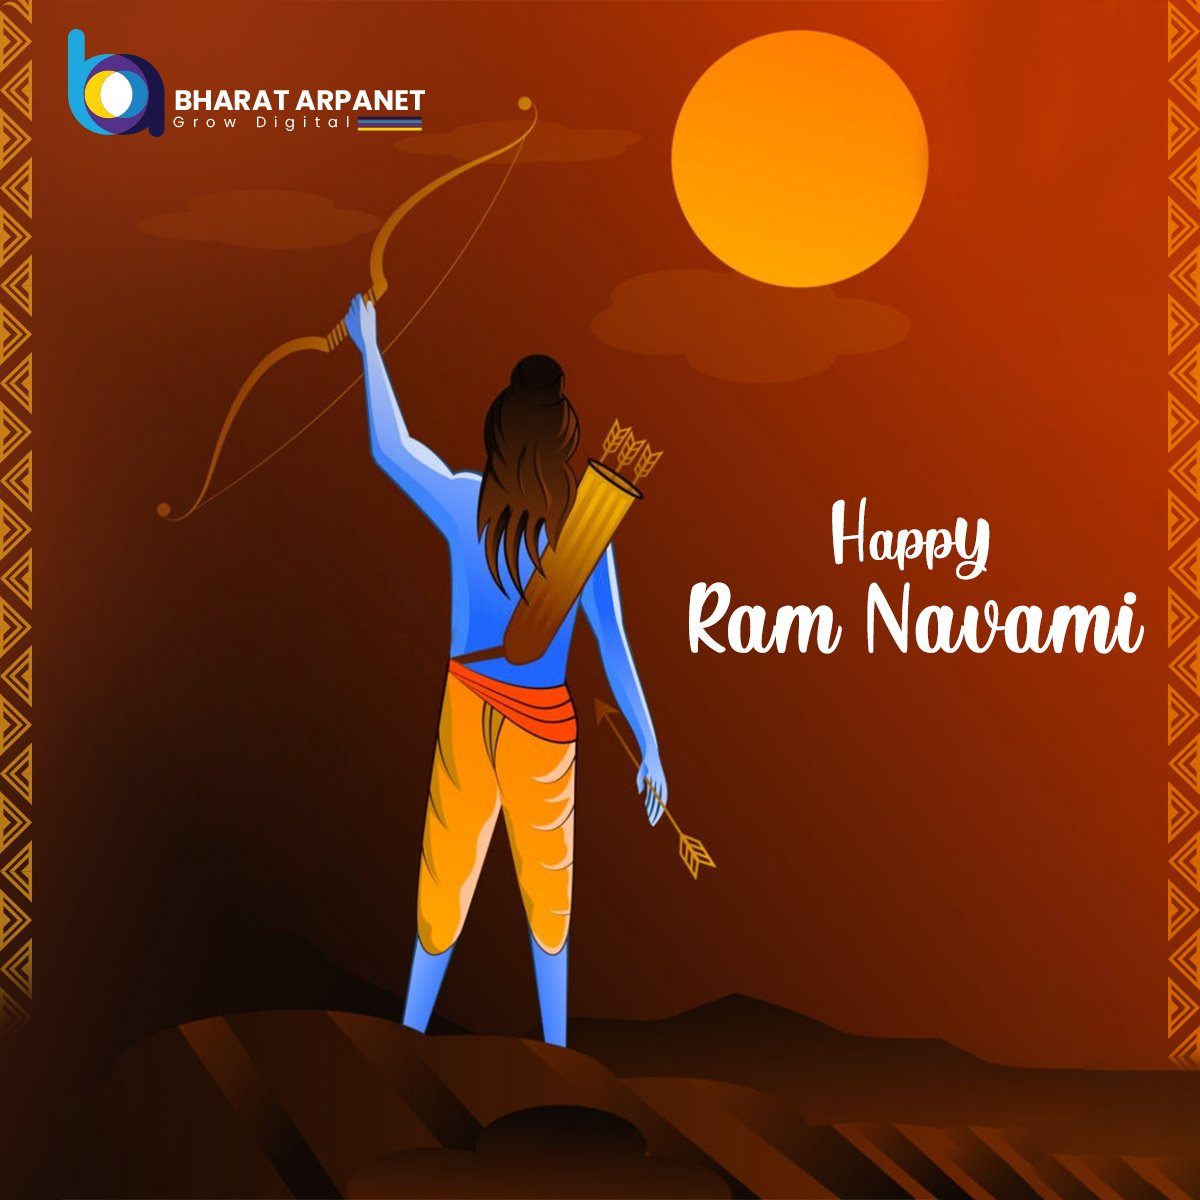 May the divine grace of Lord Rama always be with you. Wish you a very happy and prosperous Rama Navami.  #RamNavami #Jaimatadi #श्रीरामनवमी #रामनवमी_की_हार्दिक_शुभकामनाएं #BharatArpanet https://t.co/f3kqYwYu0B